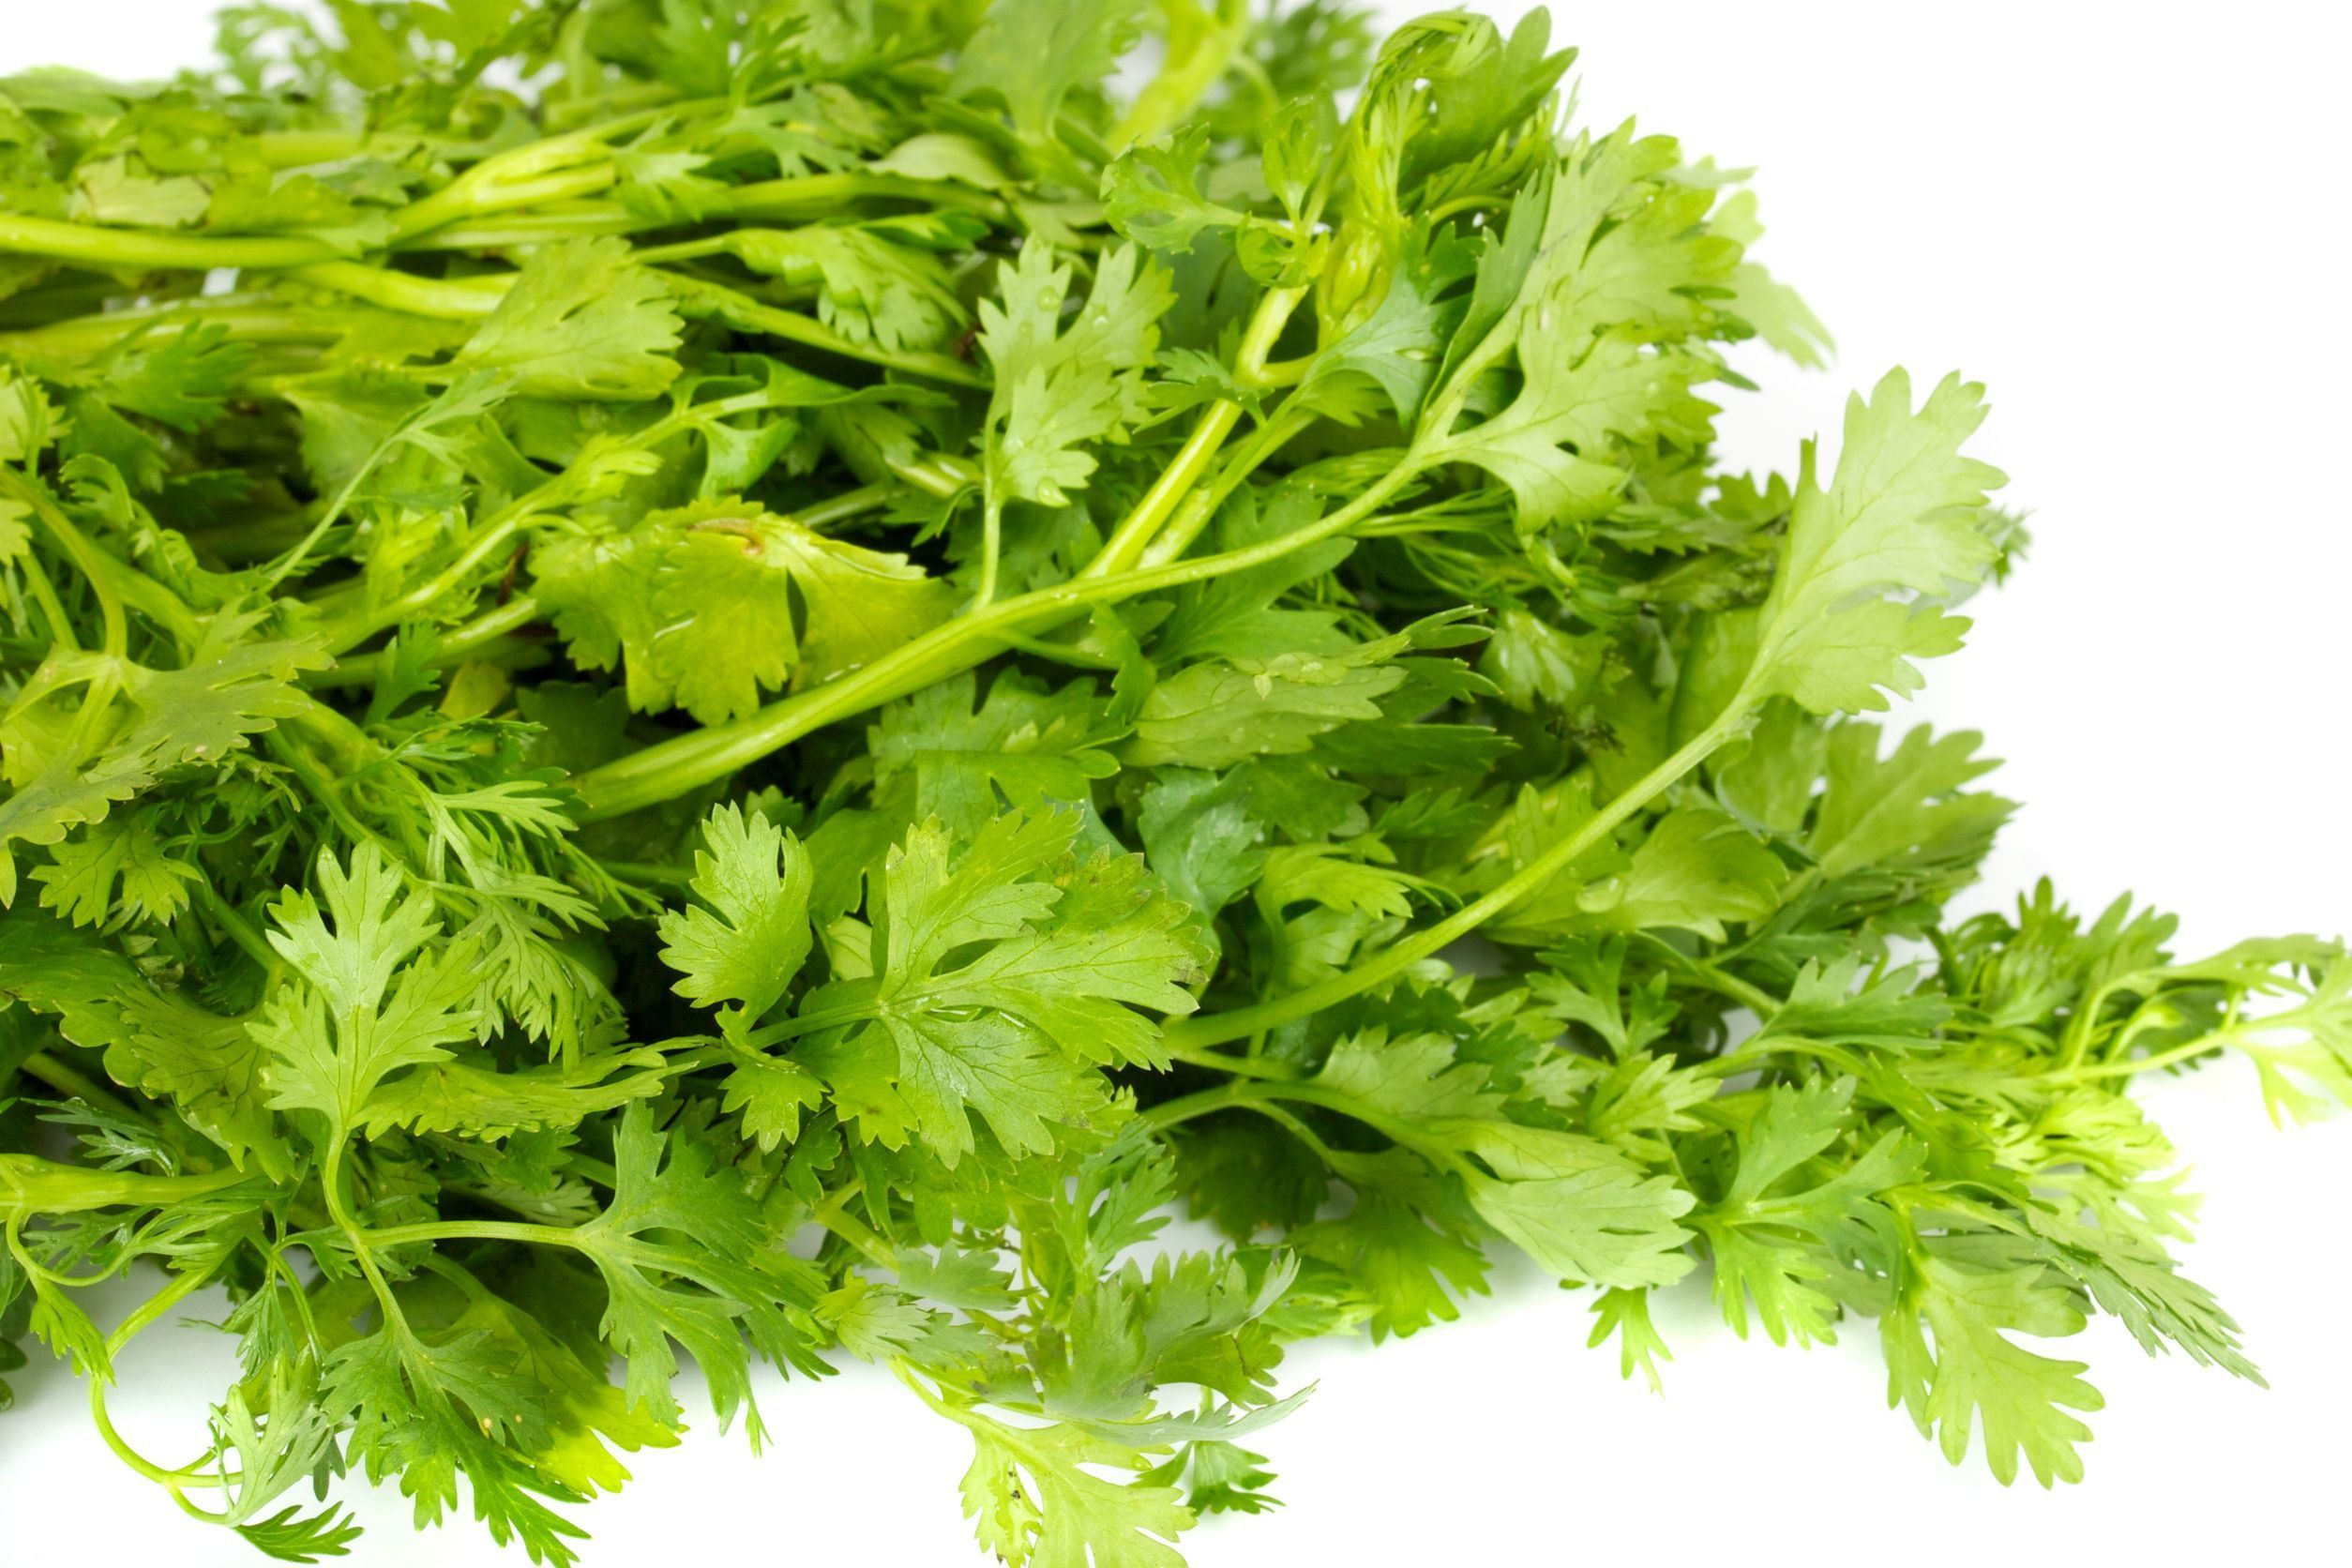 Coriander Seed Pure Essential Oil Analysis Report